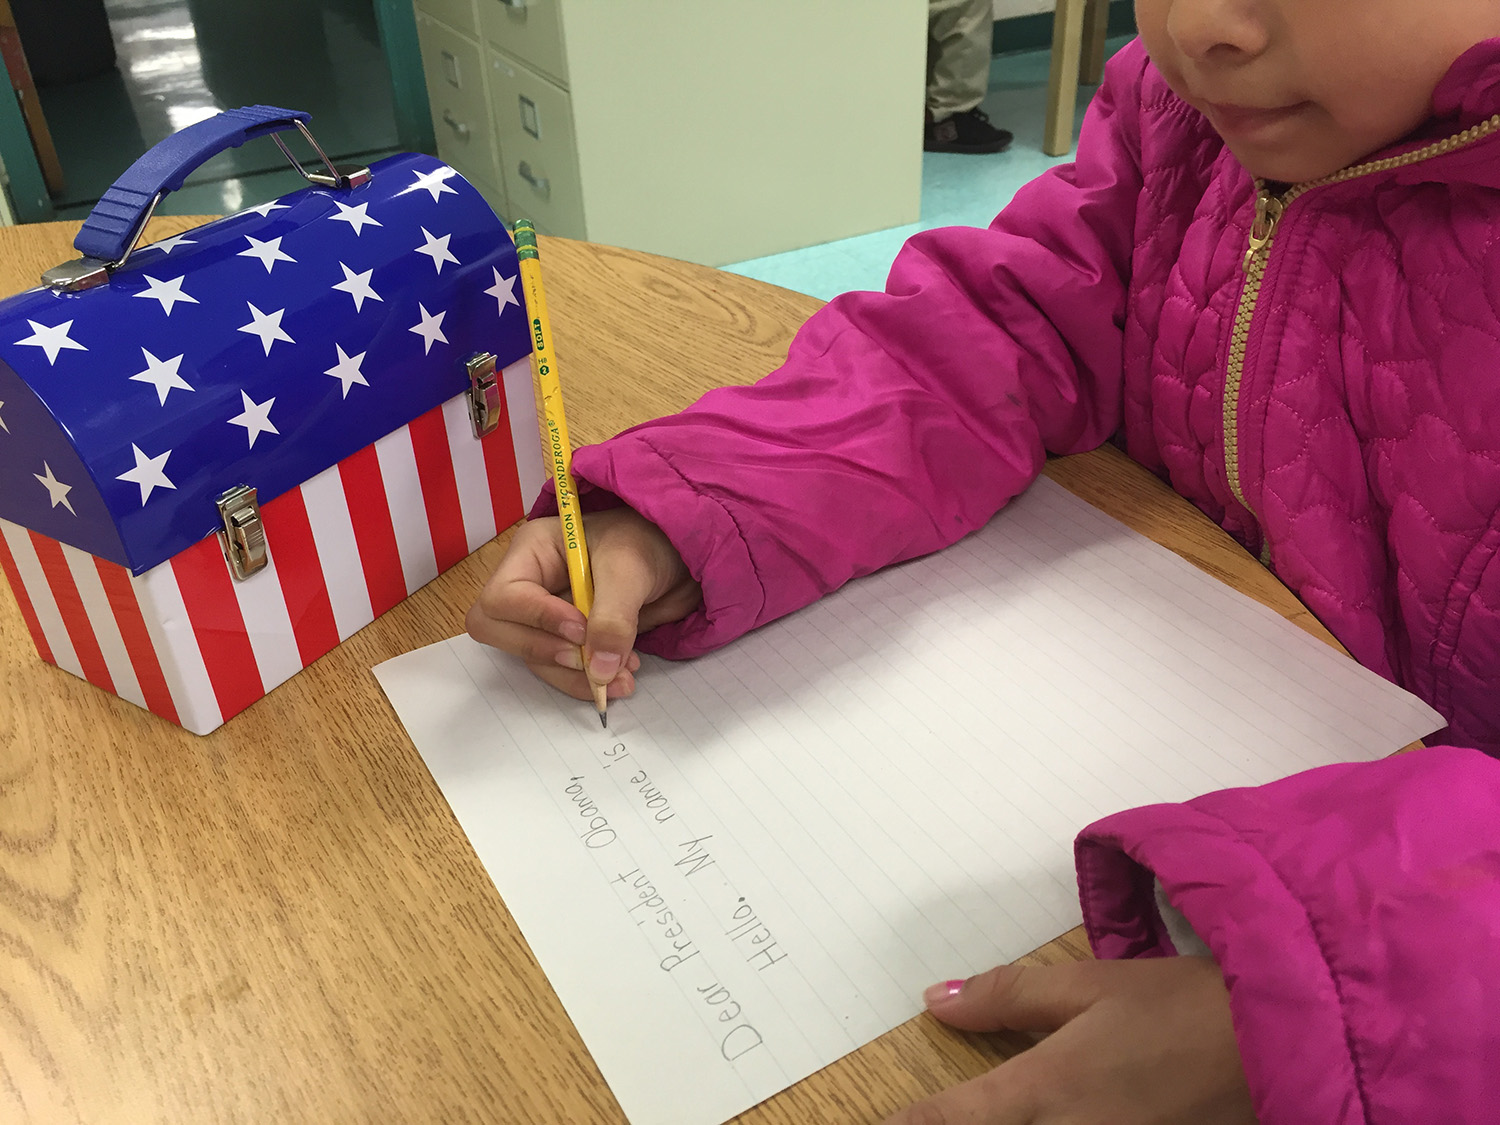 A child writing a letter to the president